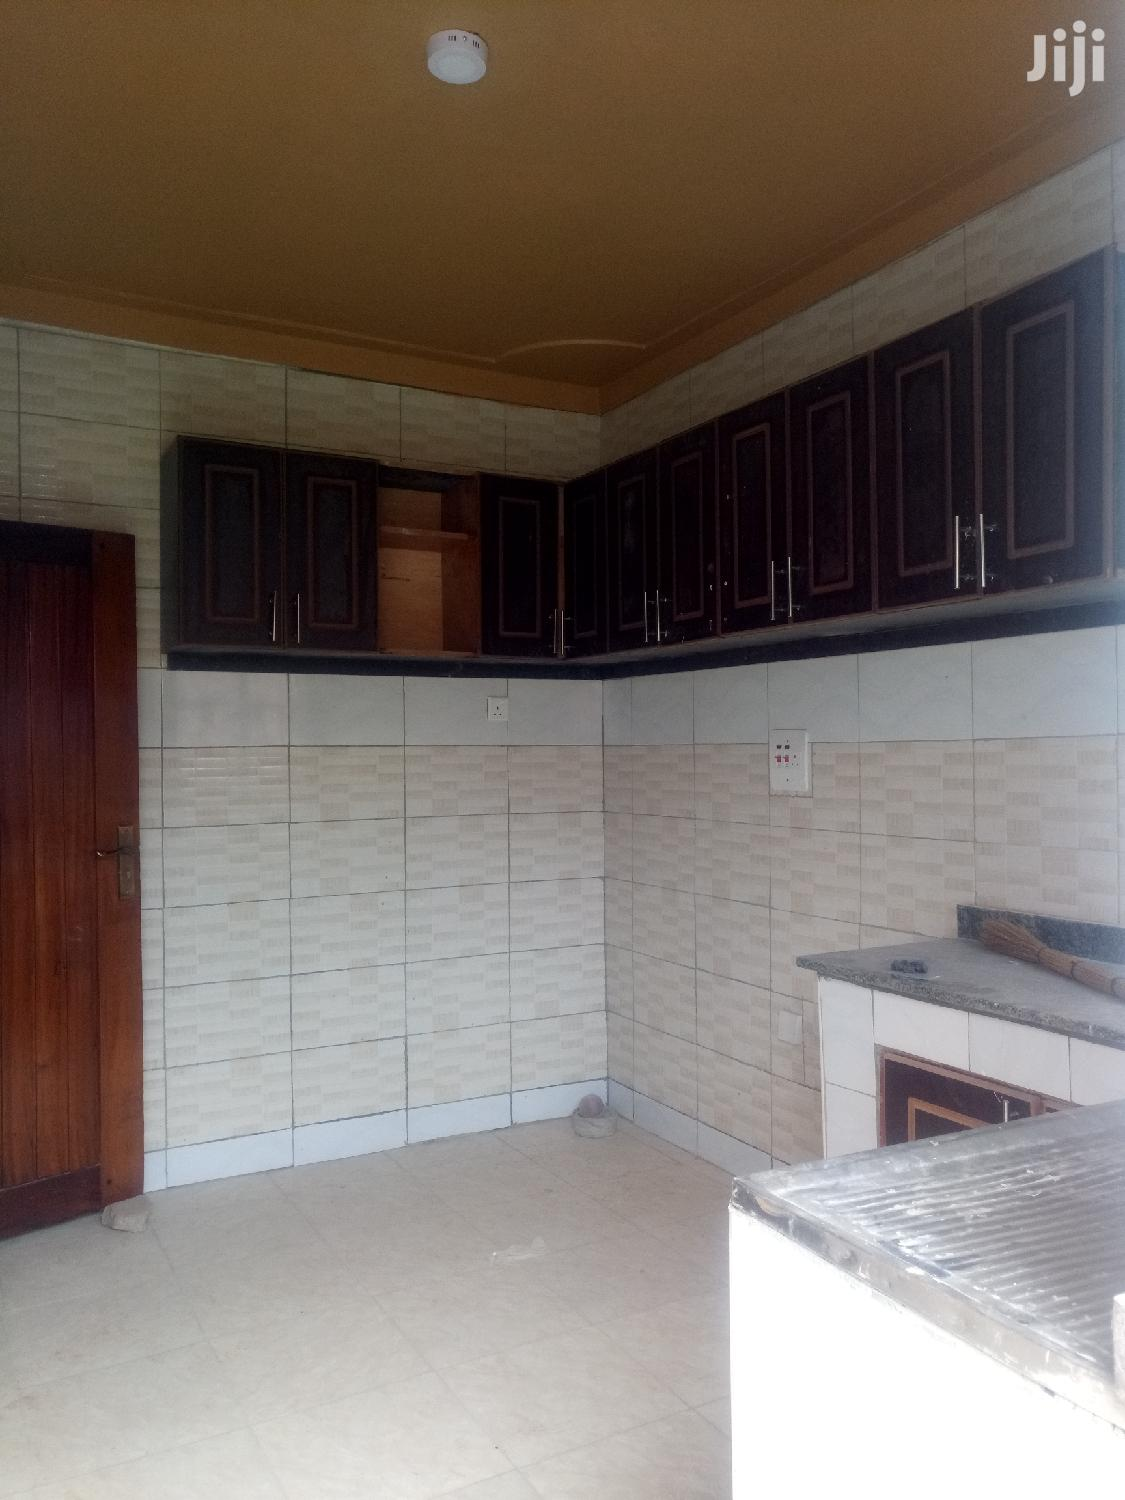 Three Bedrooms for Rent in Kireka | Houses & Apartments For Rent for sale in Kampala, Central Region, Uganda